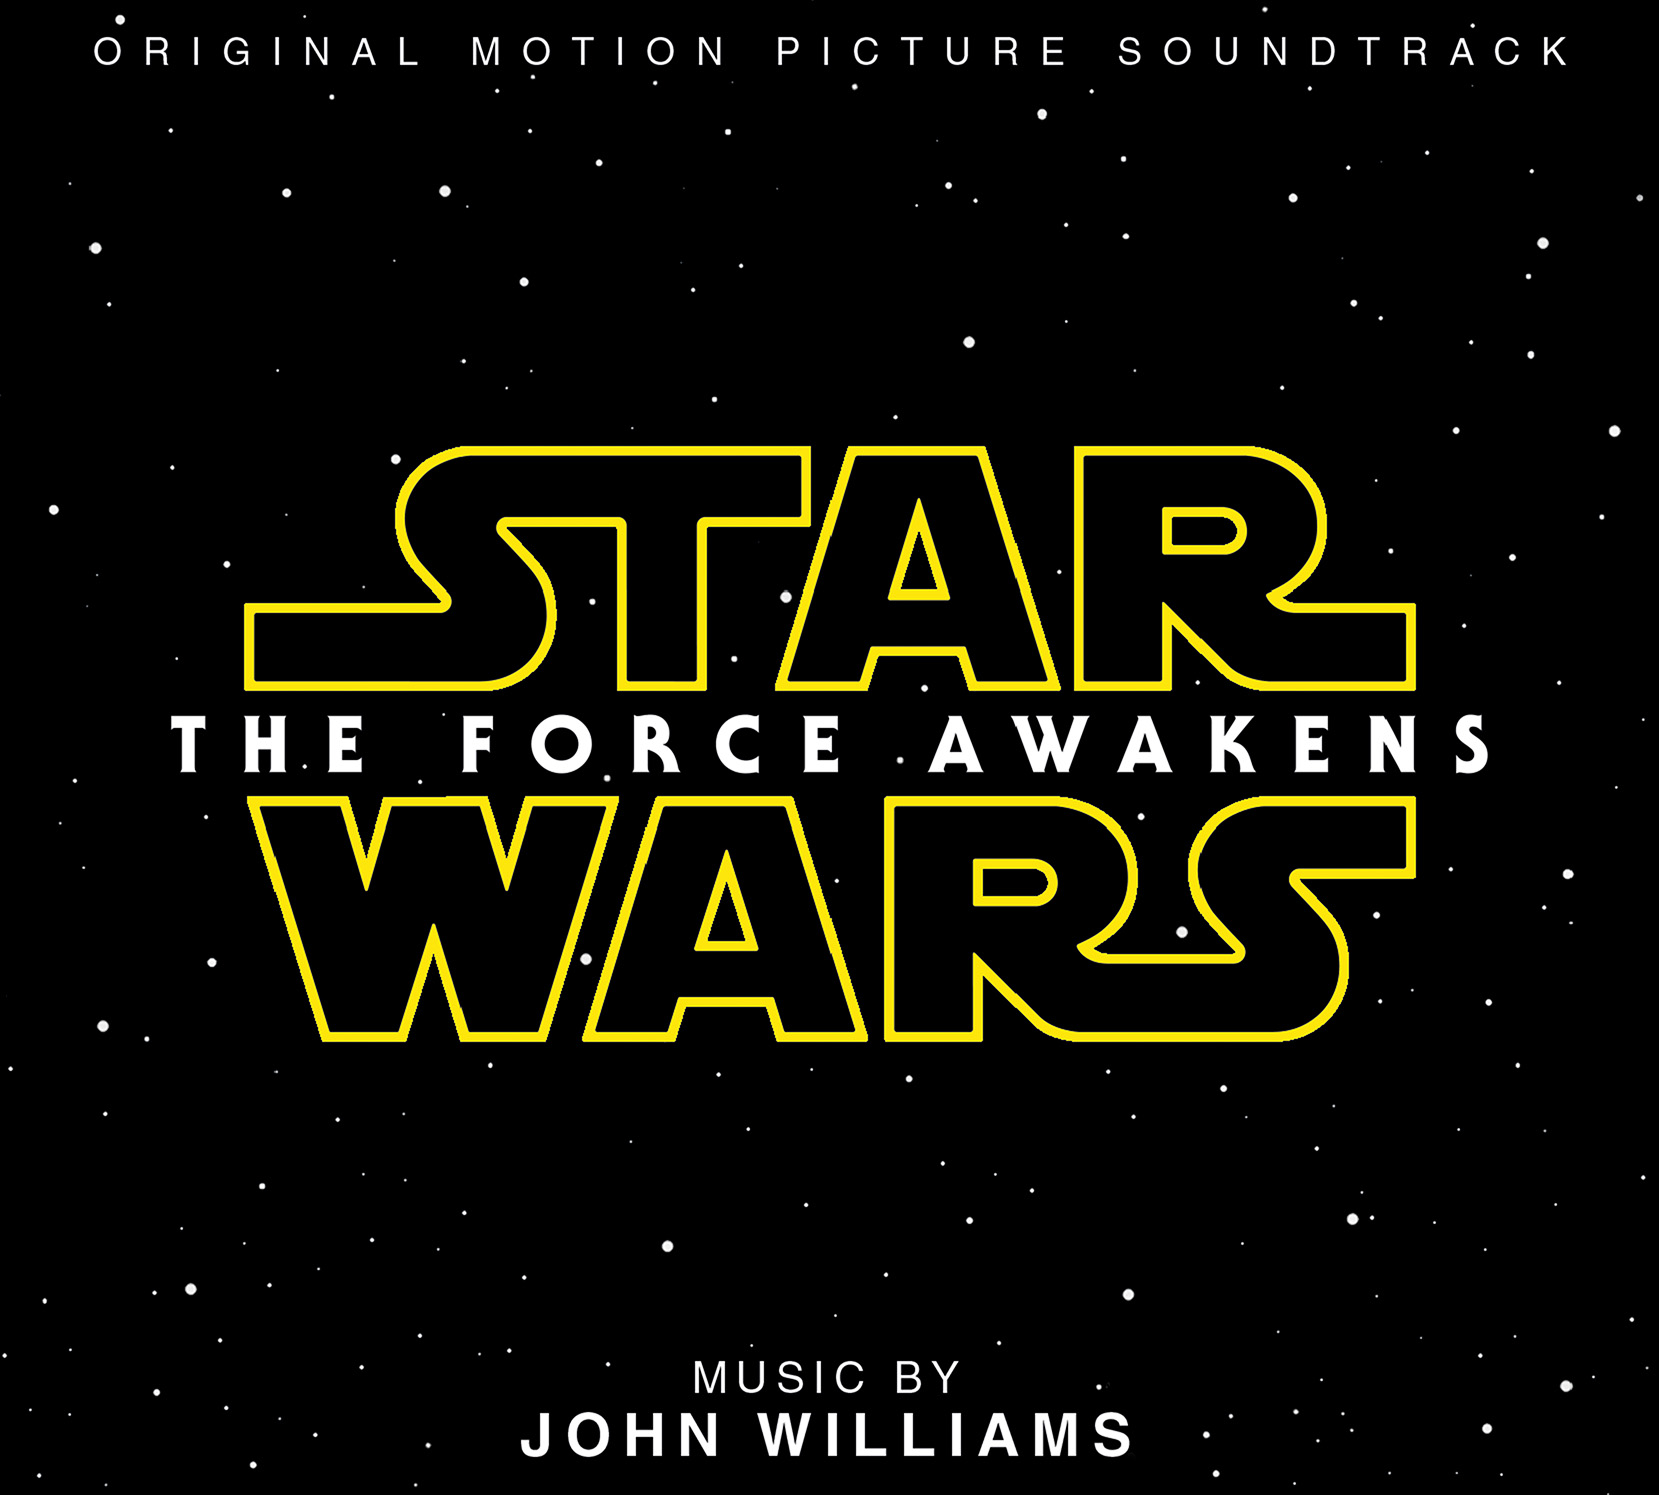 Soundtrack Review - Star Wars: The Force Awakens